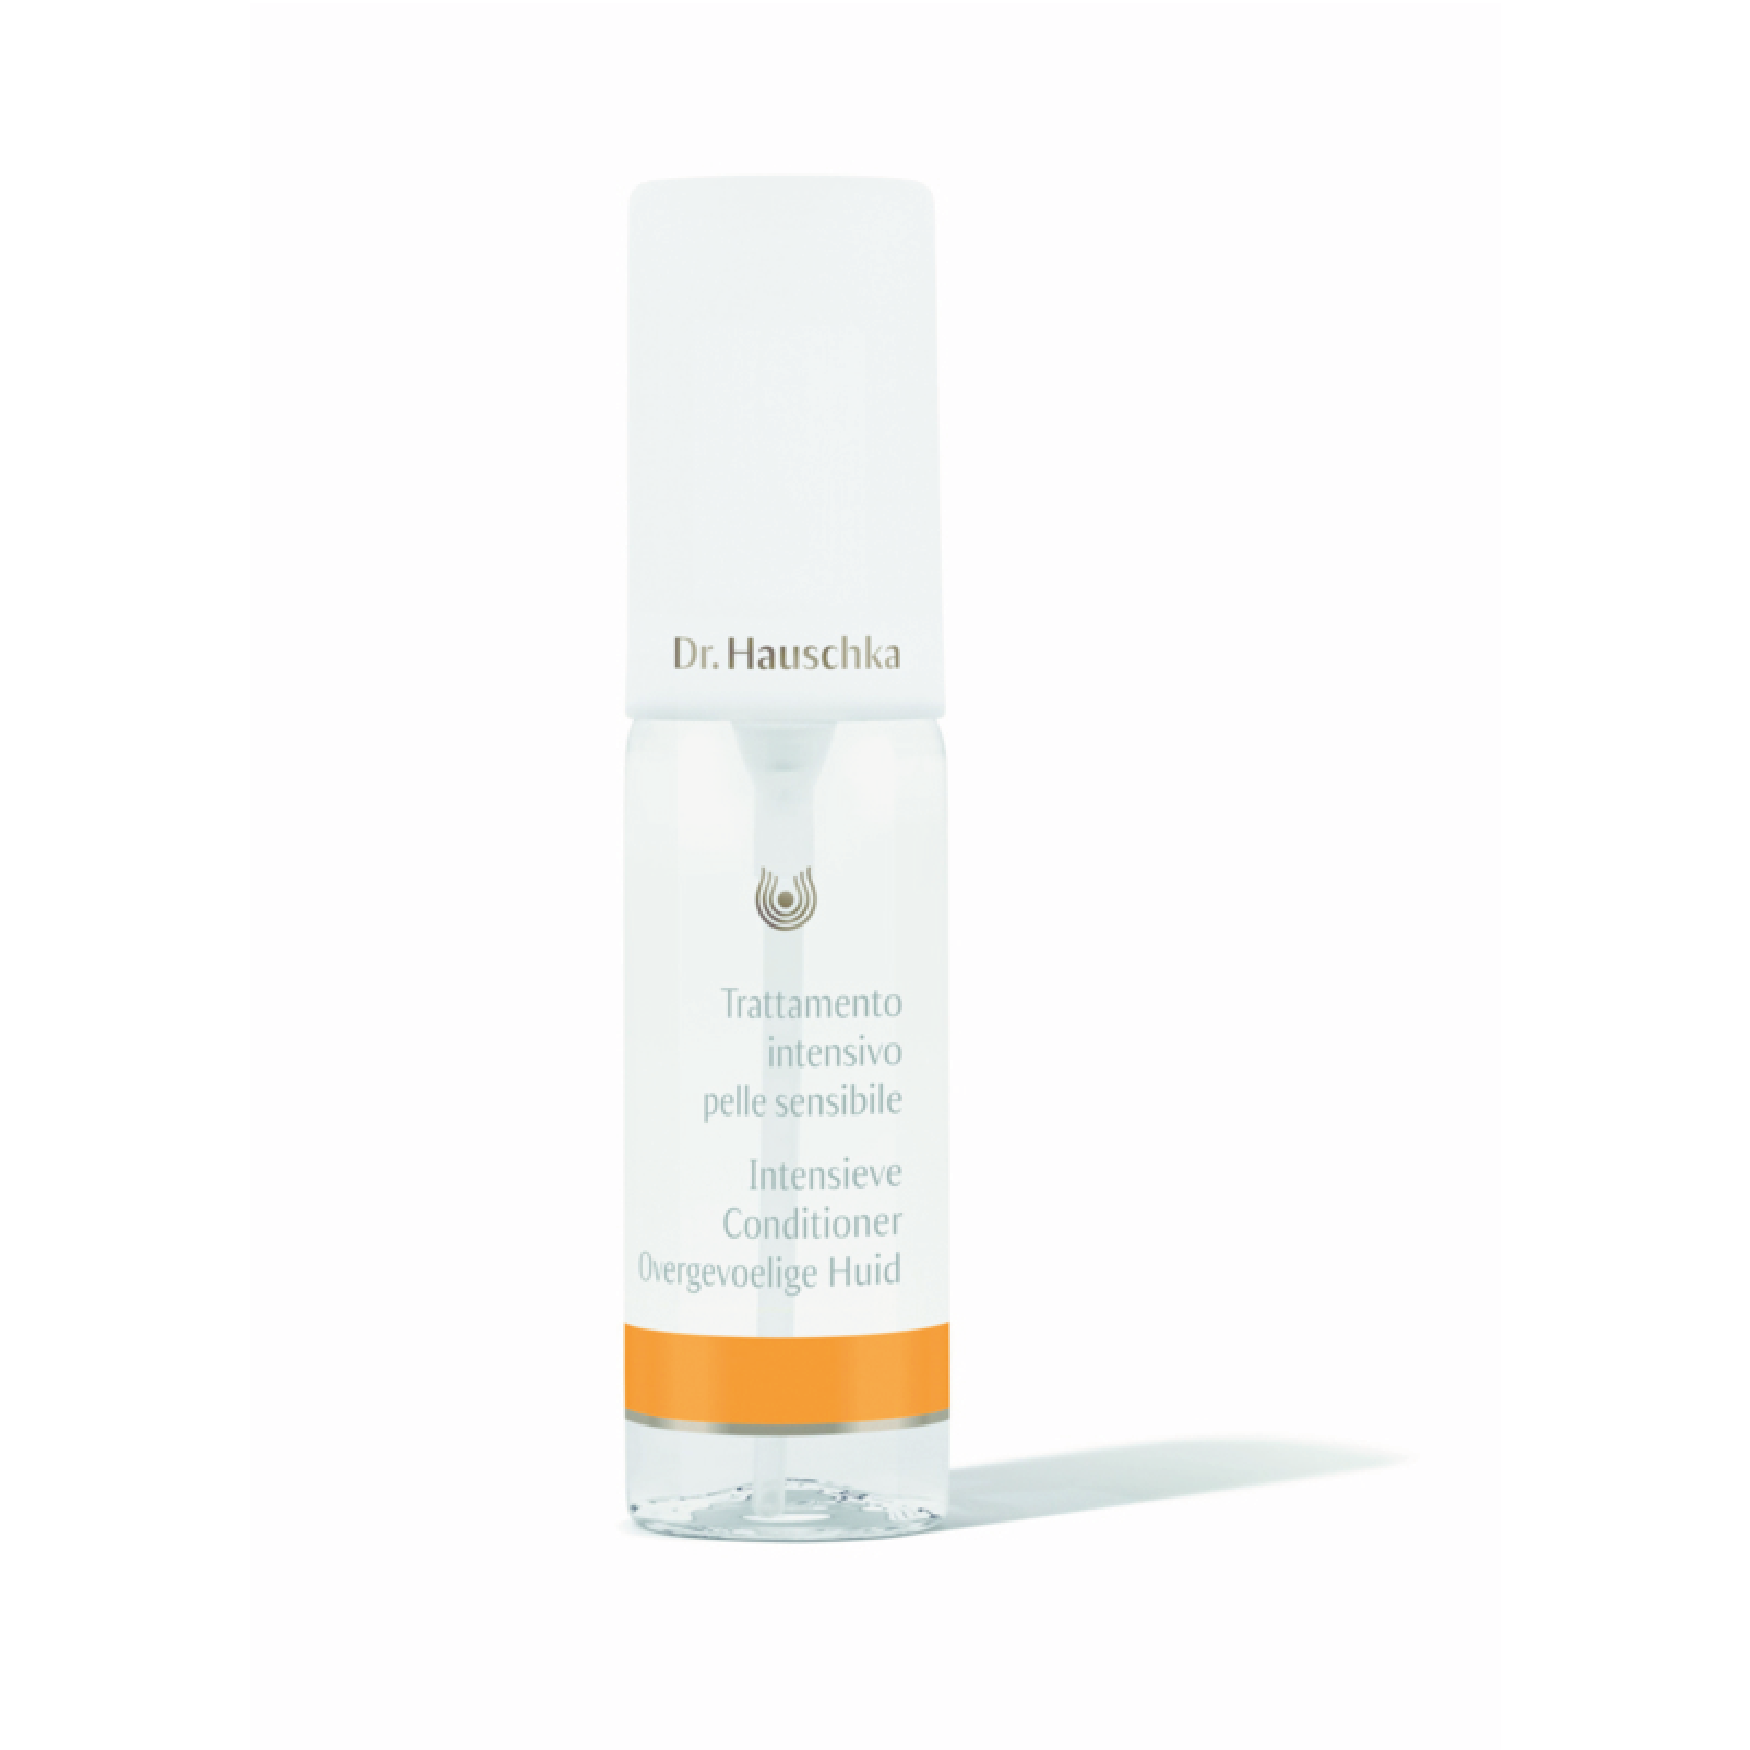 Intensieve Conditioner Menopauze 40ml